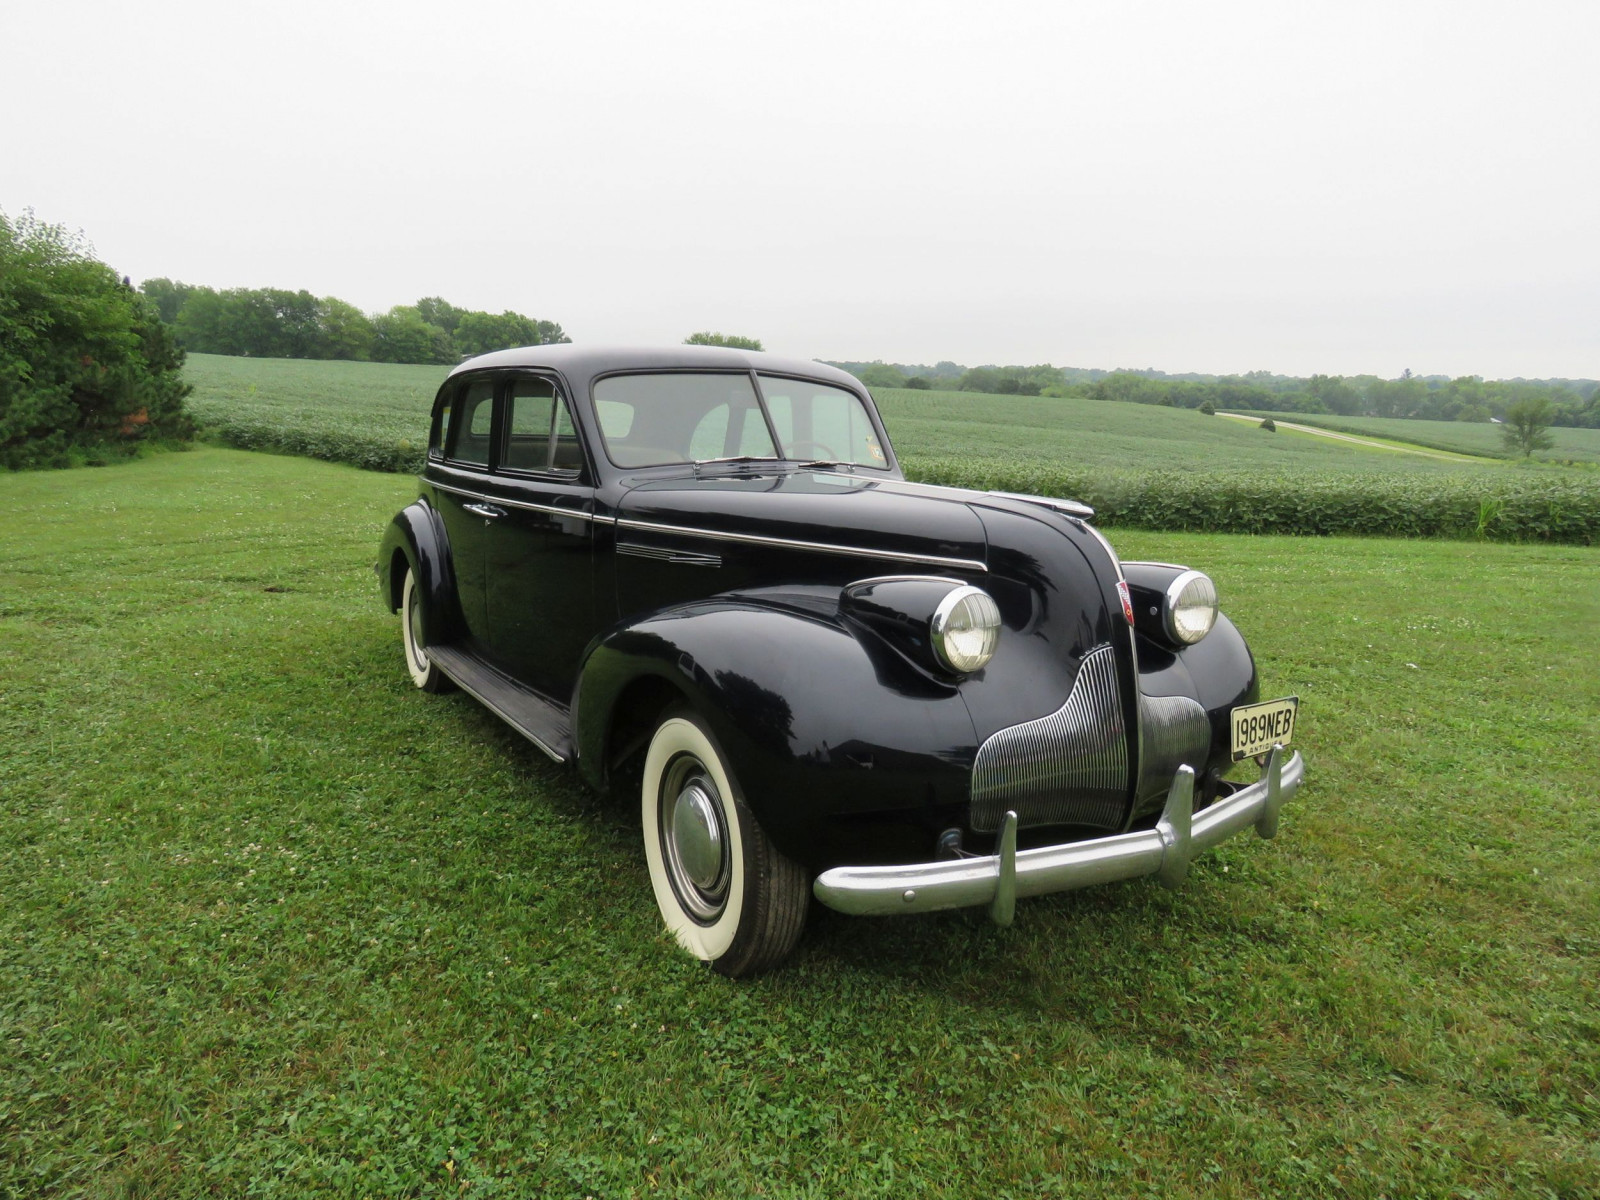 1939 Buick Special Series 40 4dr - Image 1